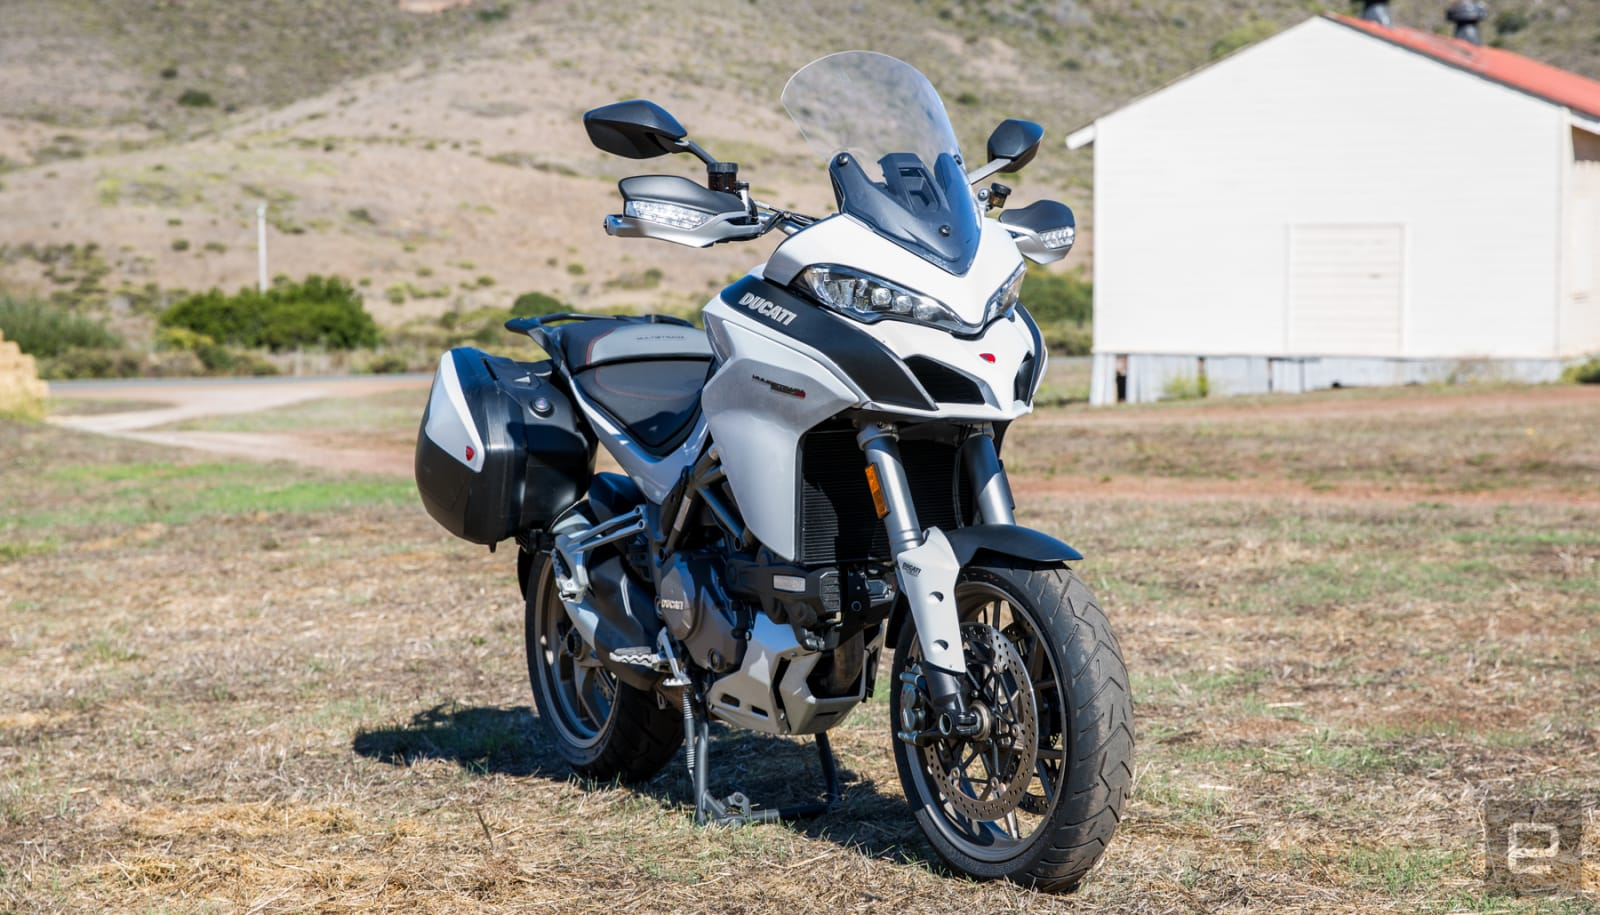 The Ducati Multistrada 1260S is ready for anything